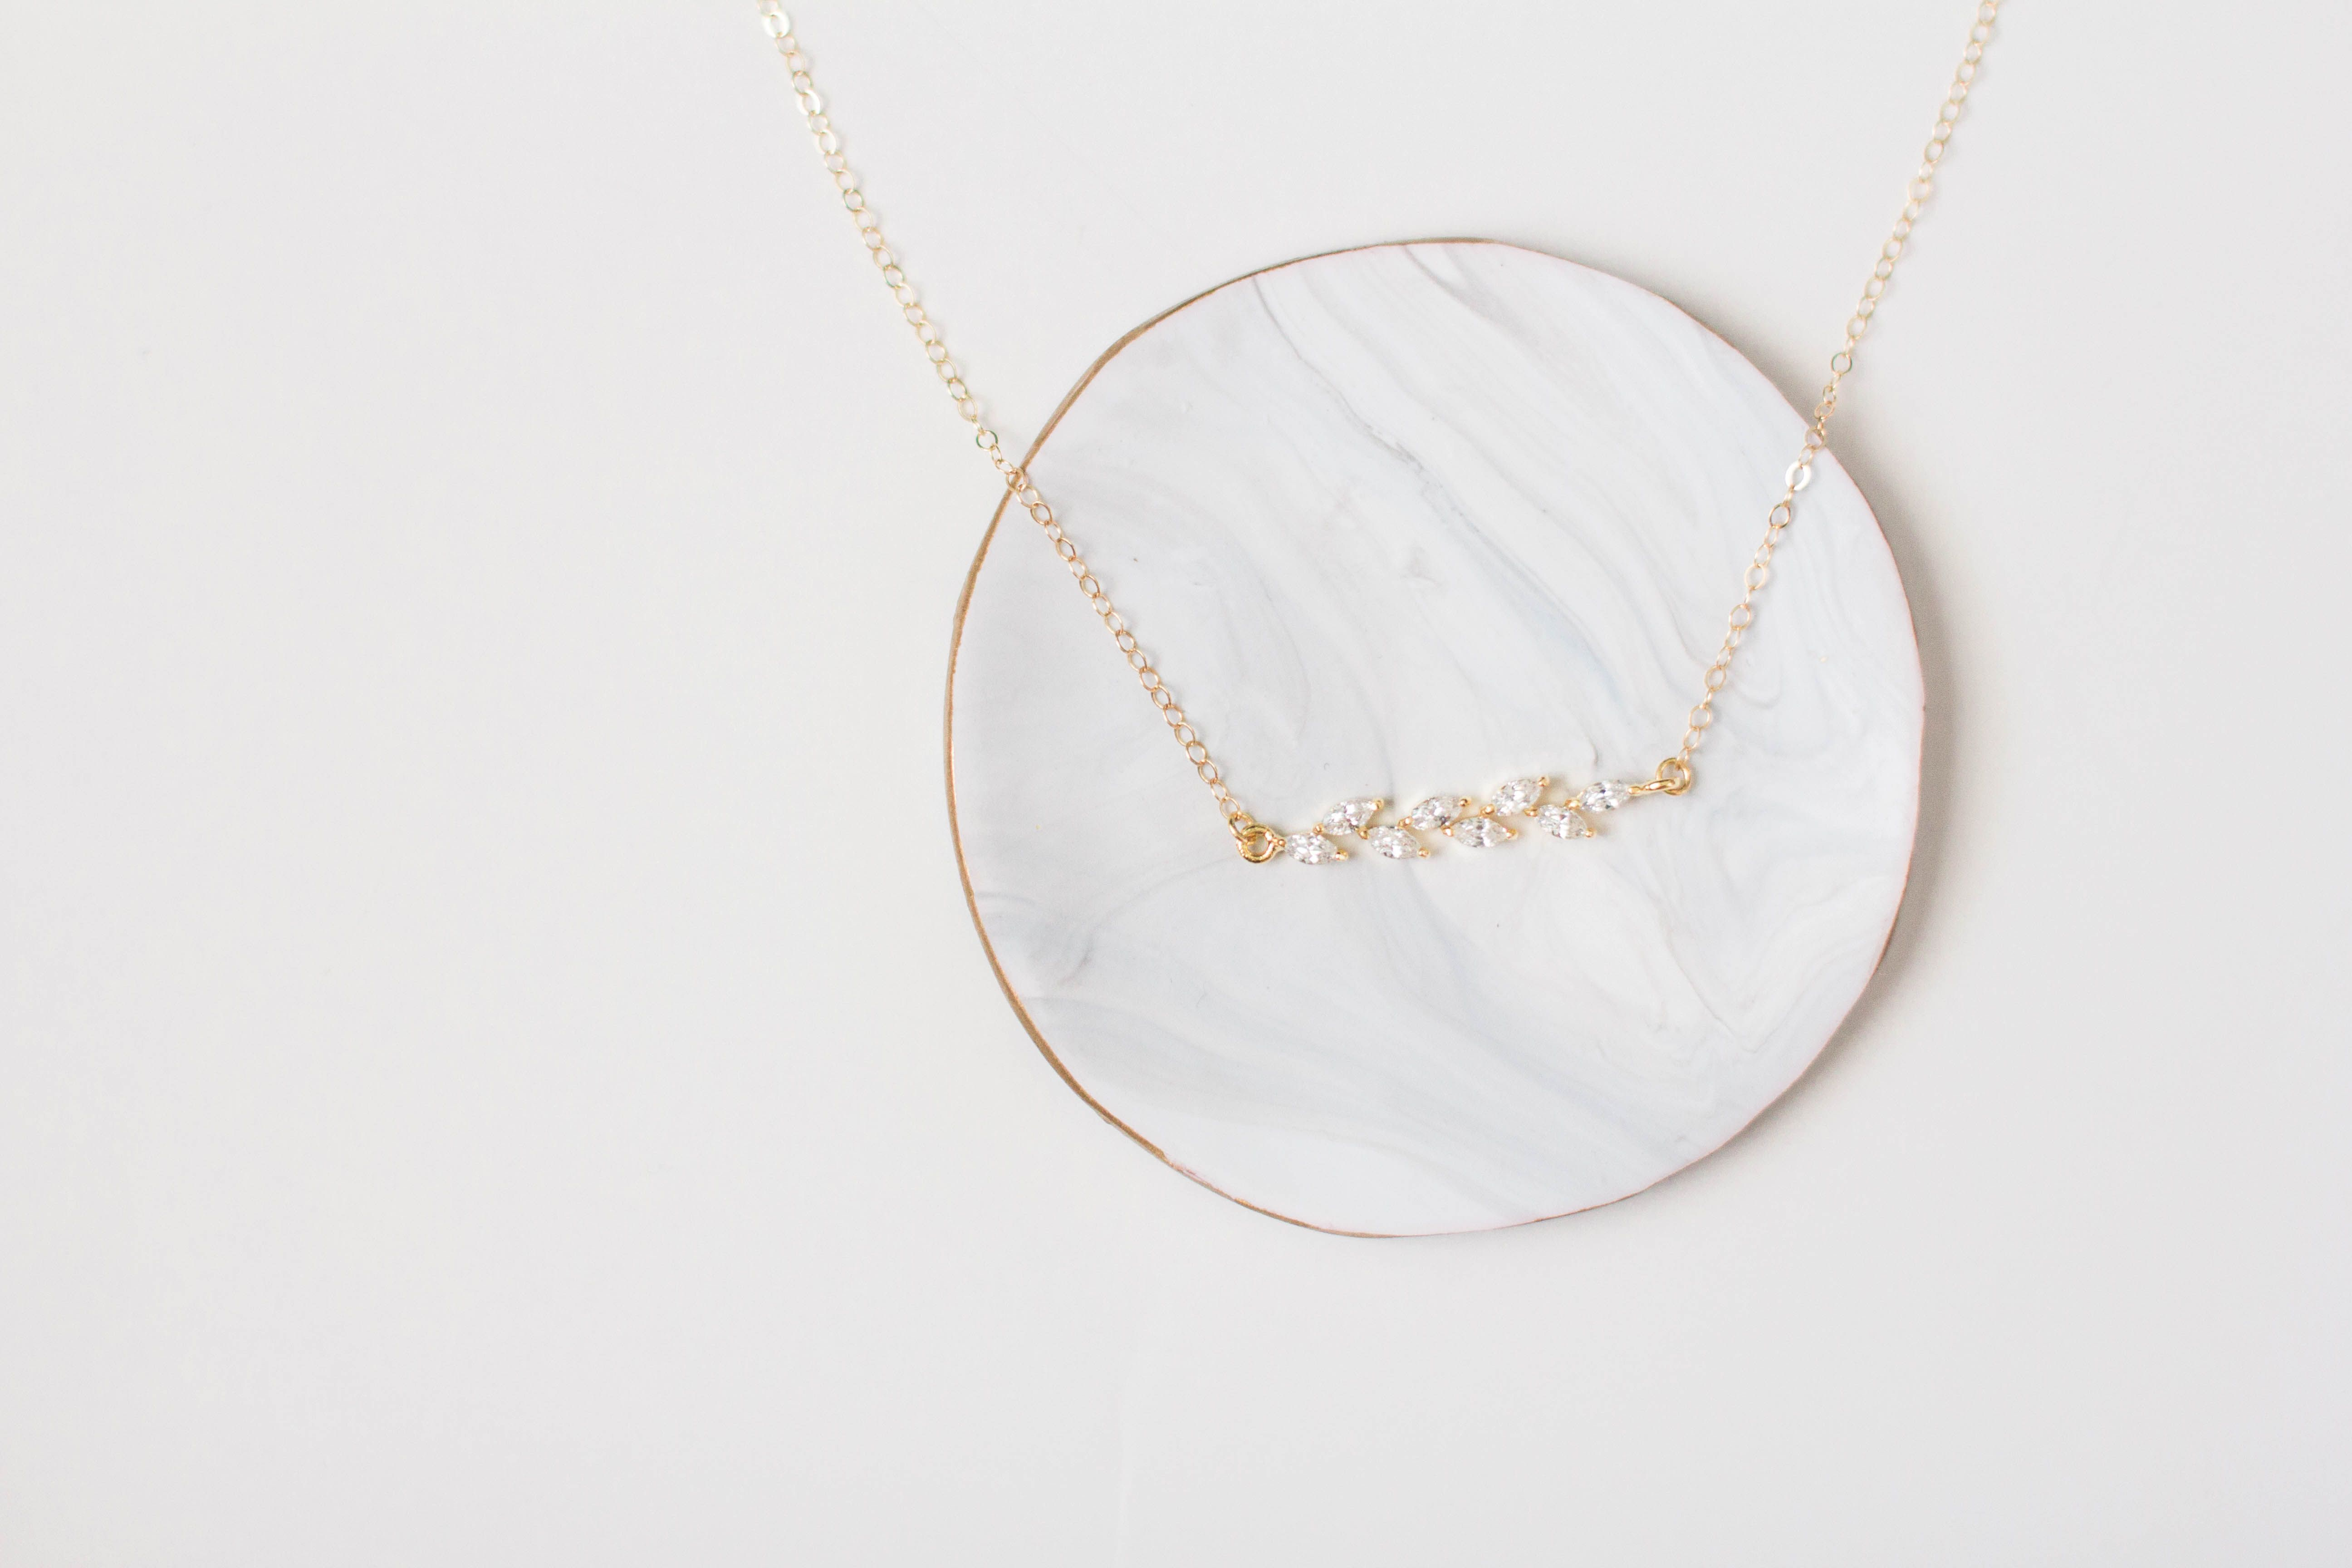 Gold Bar Layering Necklace - Gold Layering Necklace - Dainty Gold Necklace - Delicate Gold Necklace - Bar Necklace - Minimal Necklace